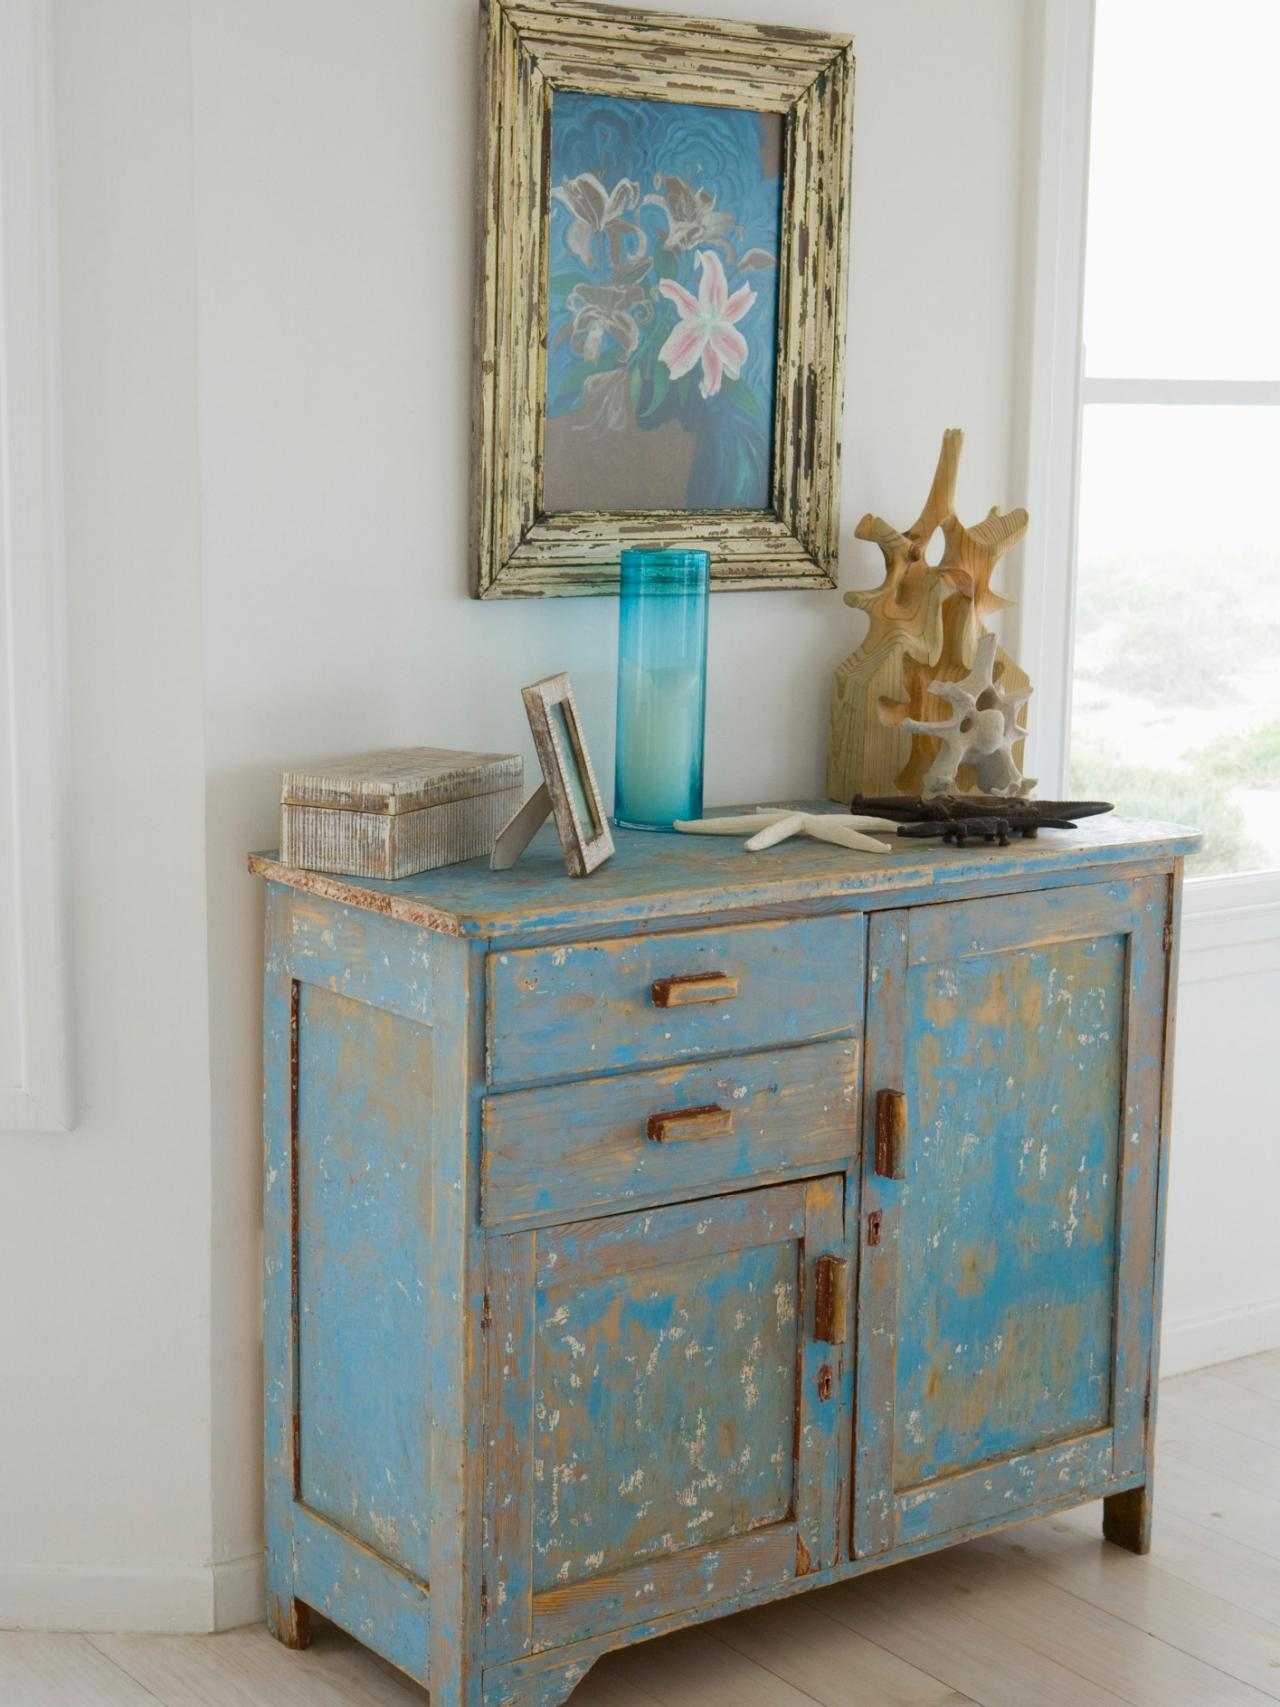 Vintage Rustic Chic Home Decor (View 8 of 10)